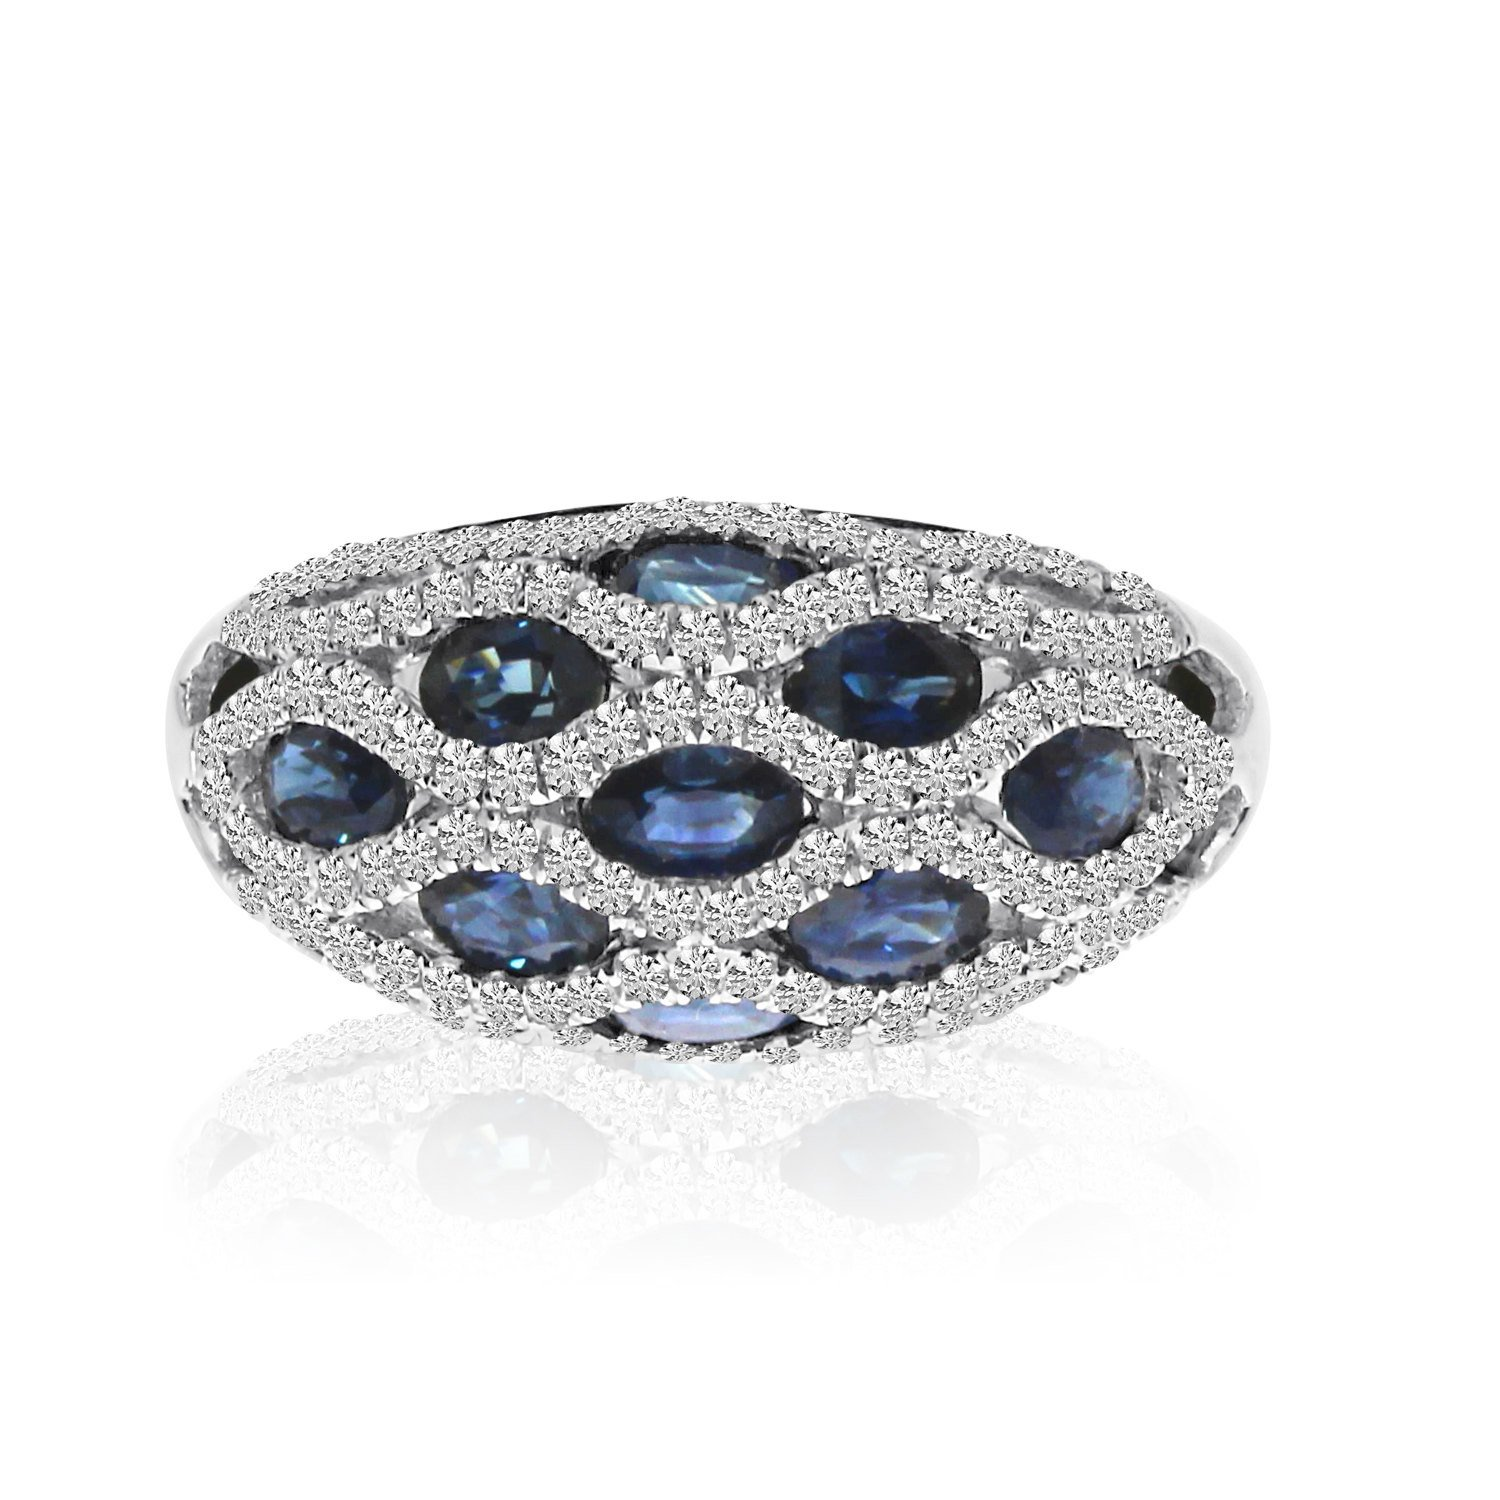 1.80 Carat Sapphire & Diamond Domed Lattice Ring